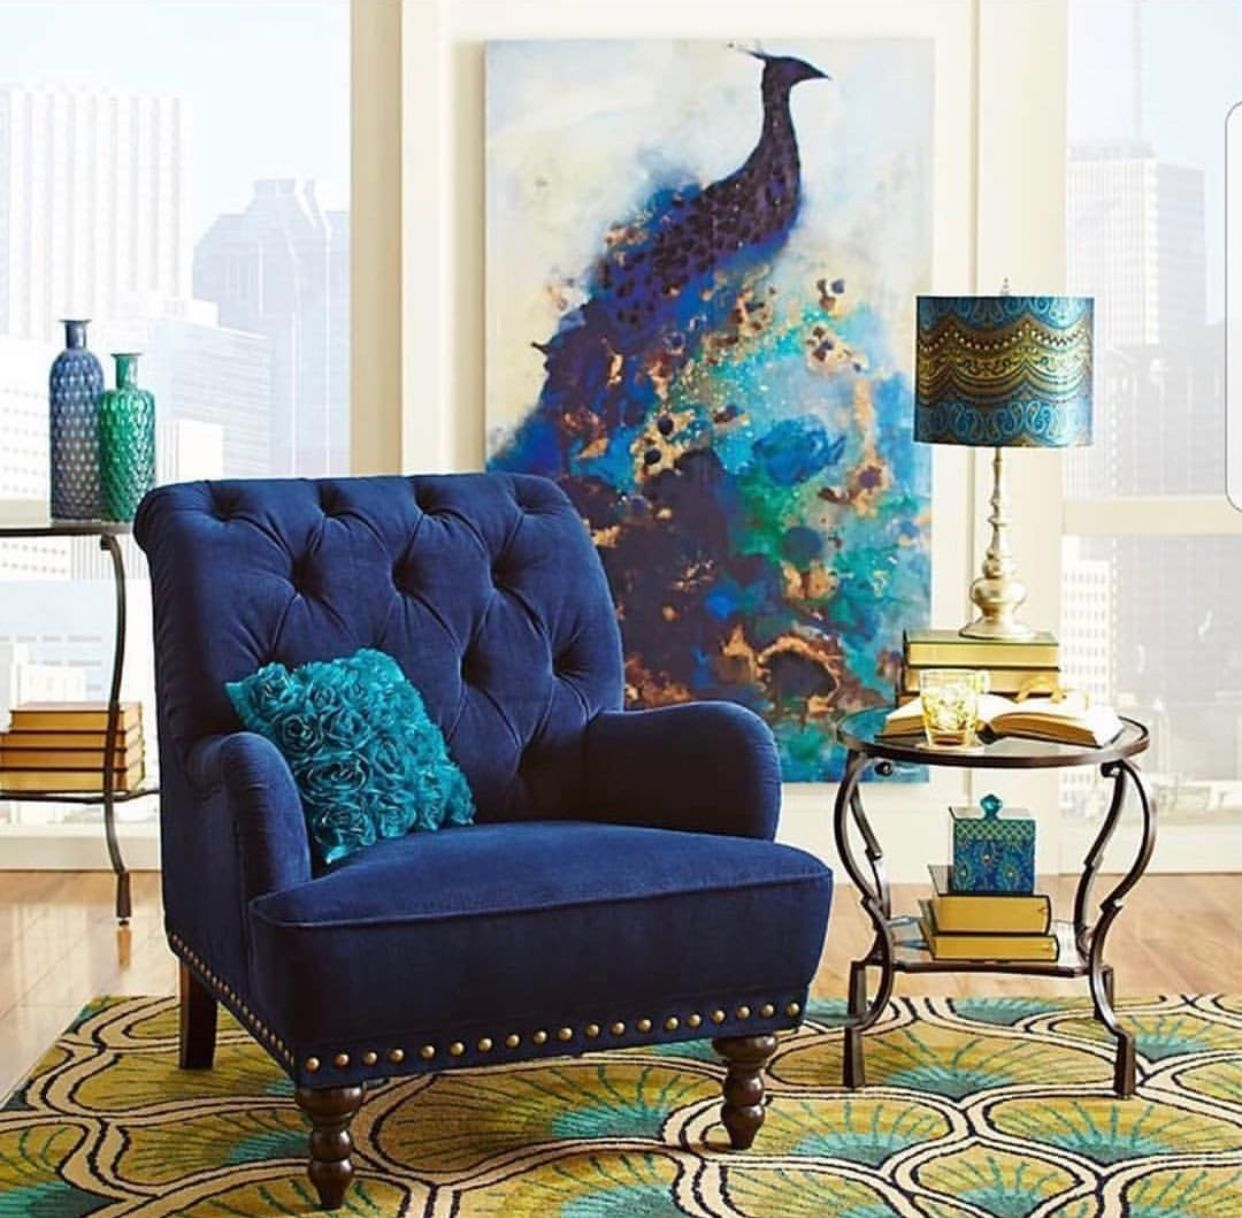 Peacock Living Room Peacock Patterns Home Color Inspiration In 2019 Peacock